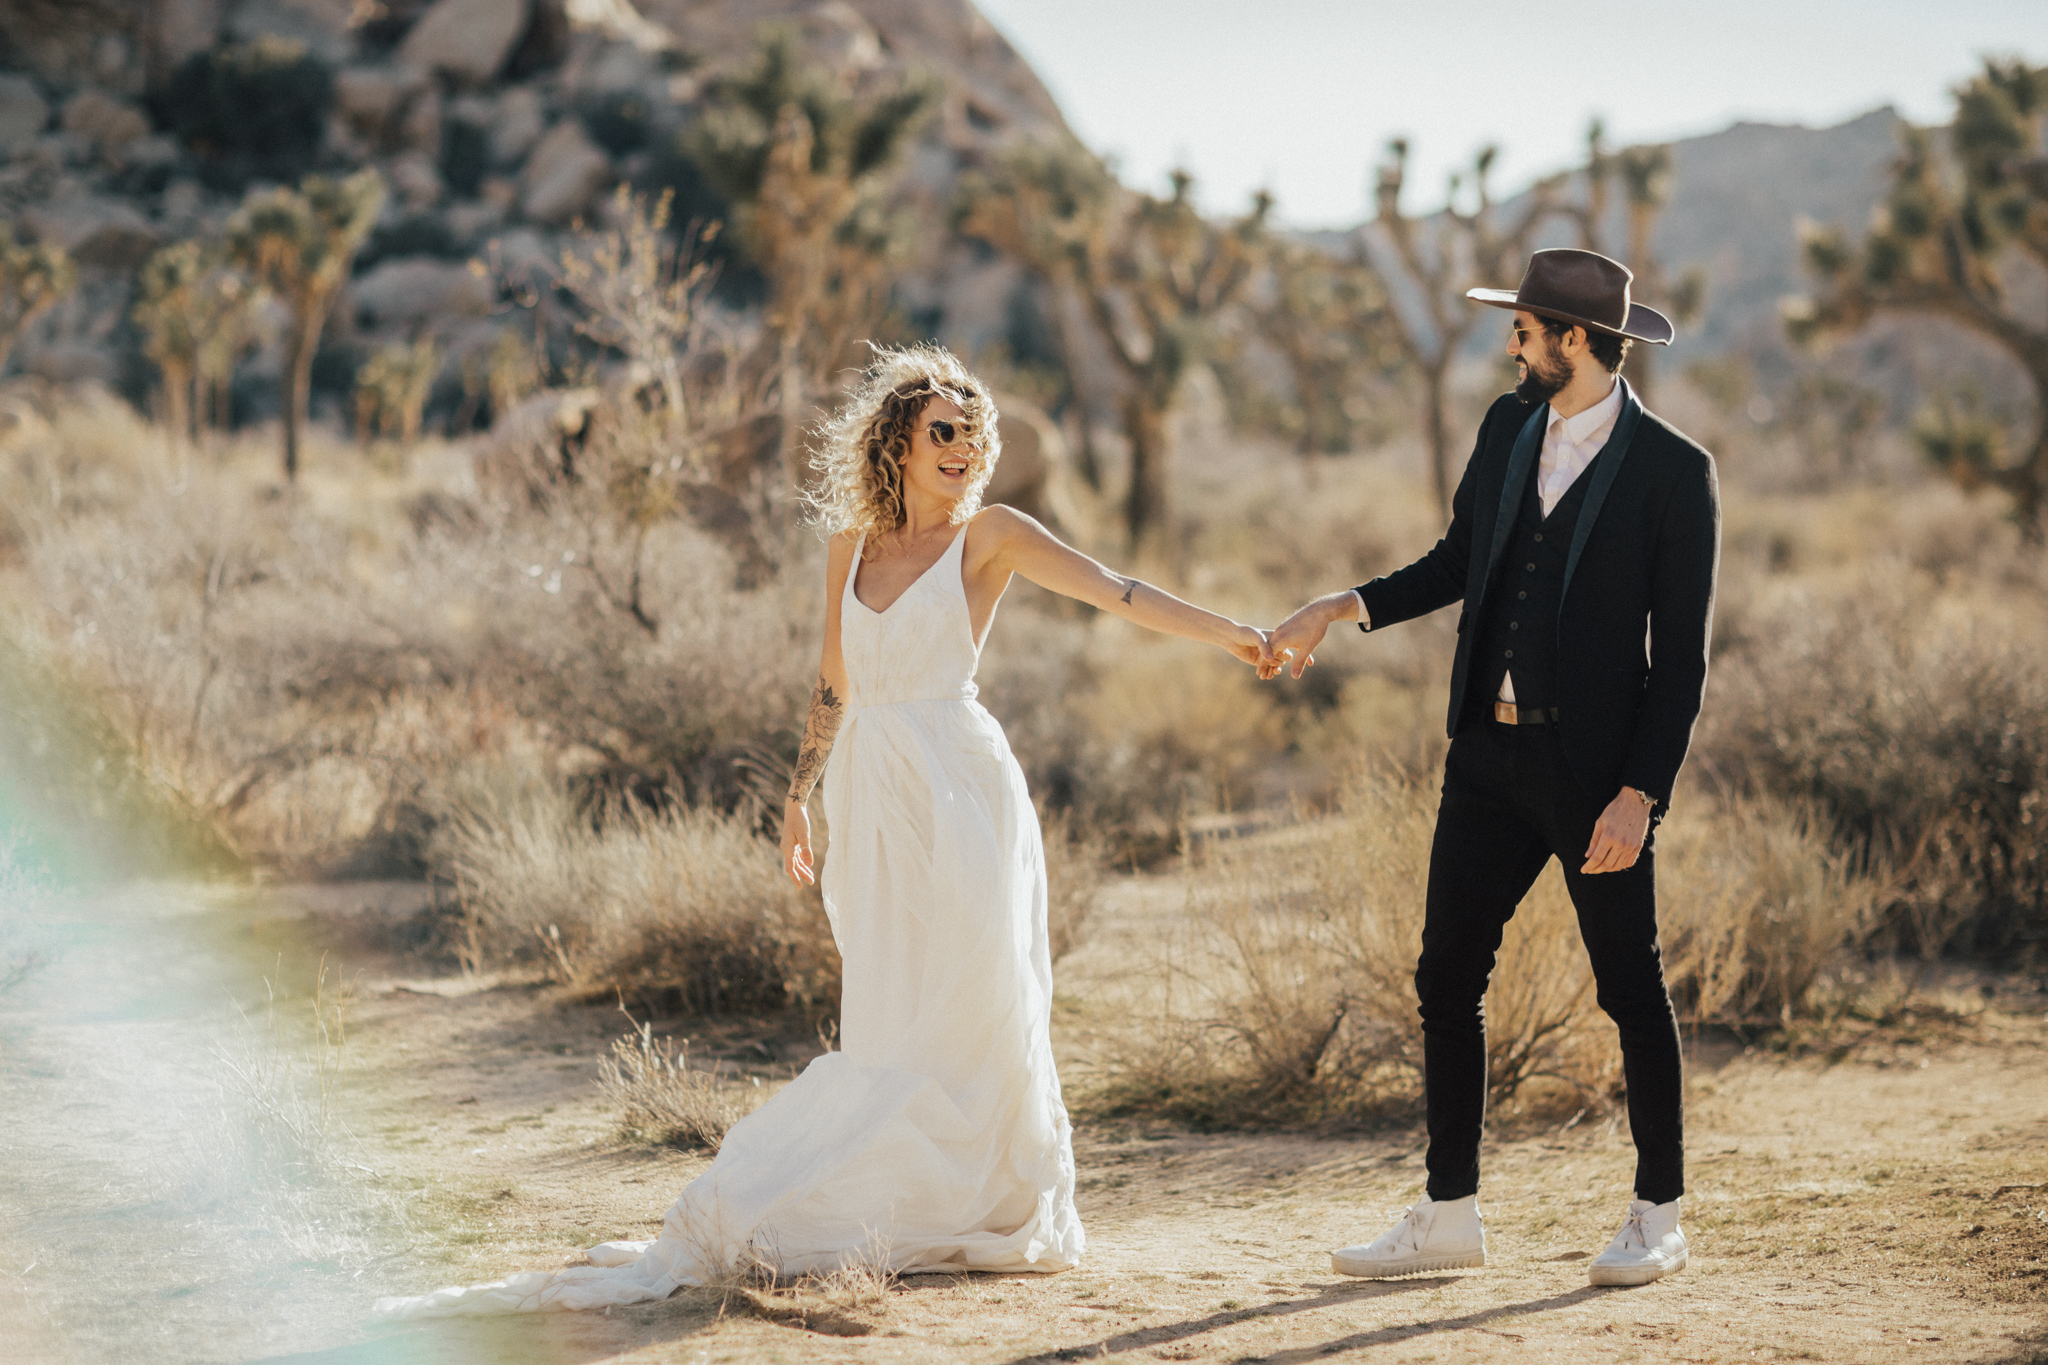 Hipster destination wedding photographers